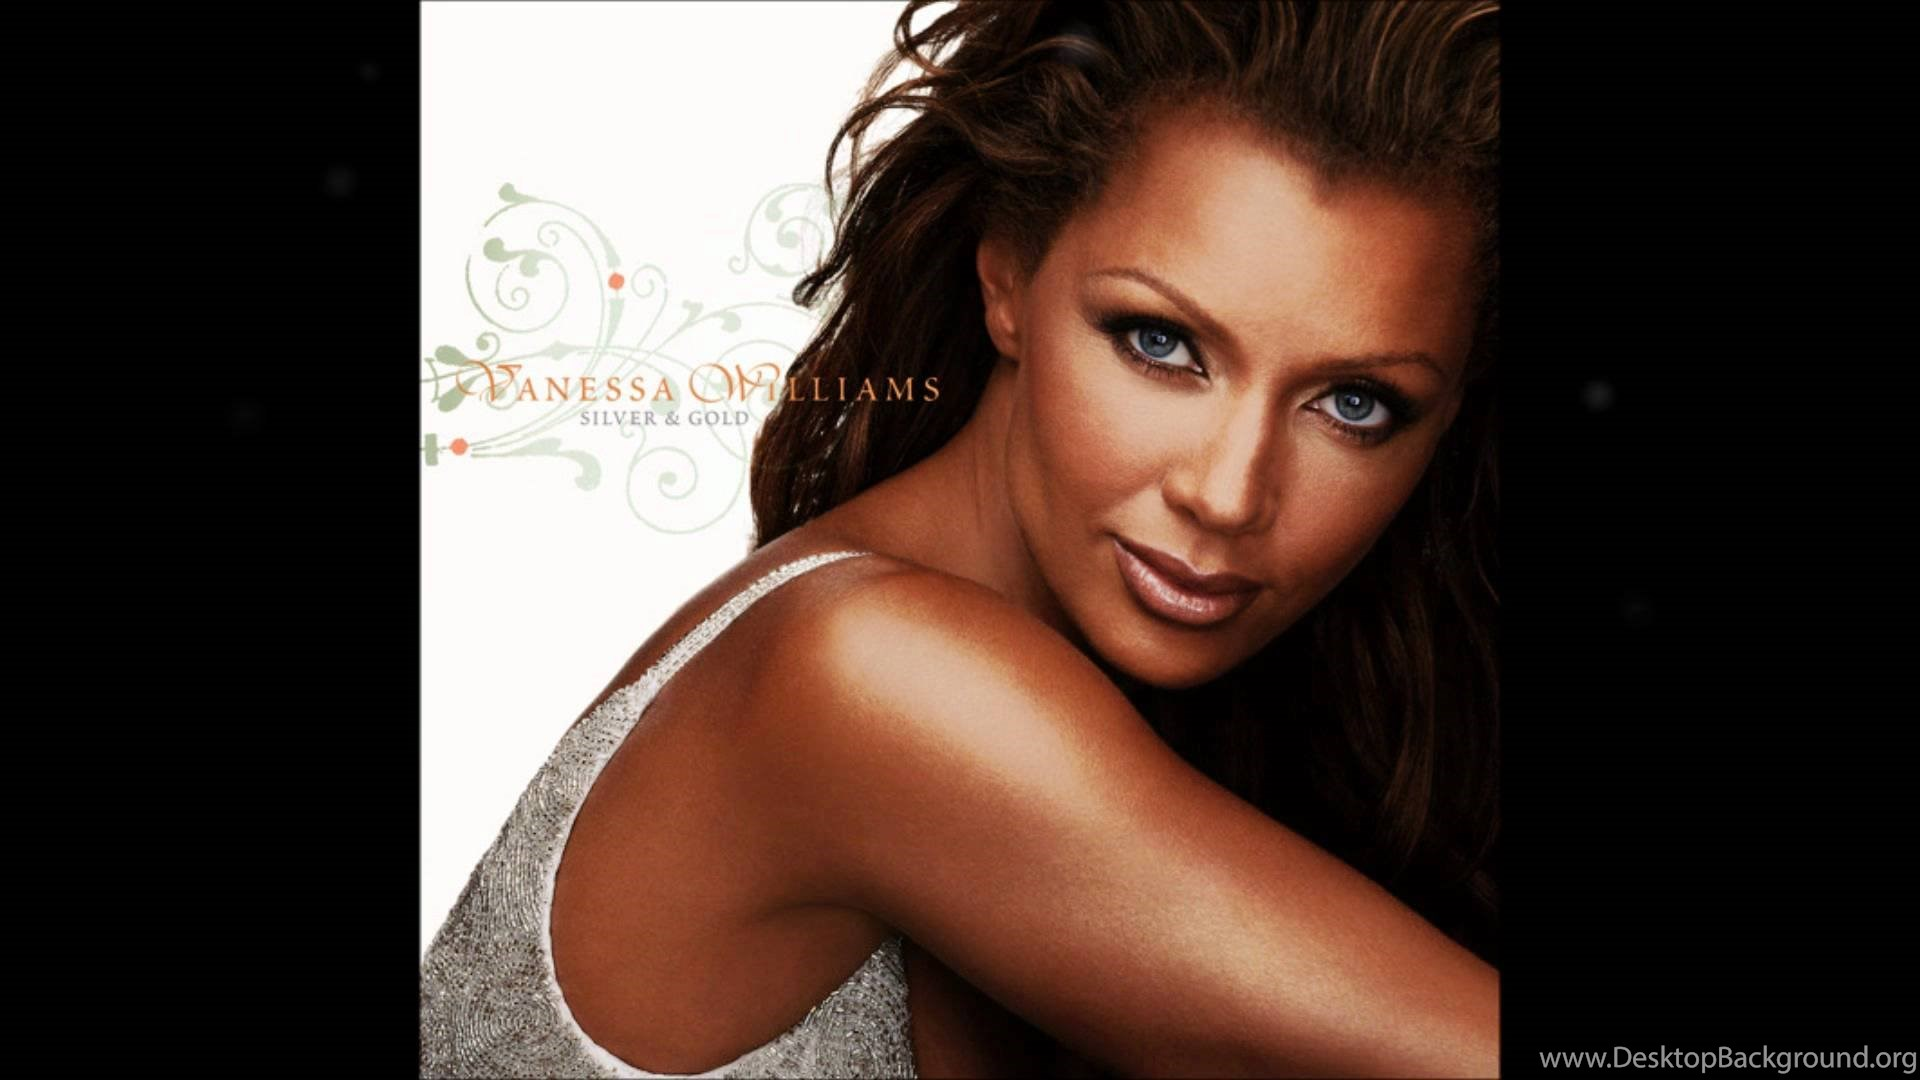 Youtube Vanessa Williams naked (13 photos), Topless, Bikini, Twitter, swimsuit 2019